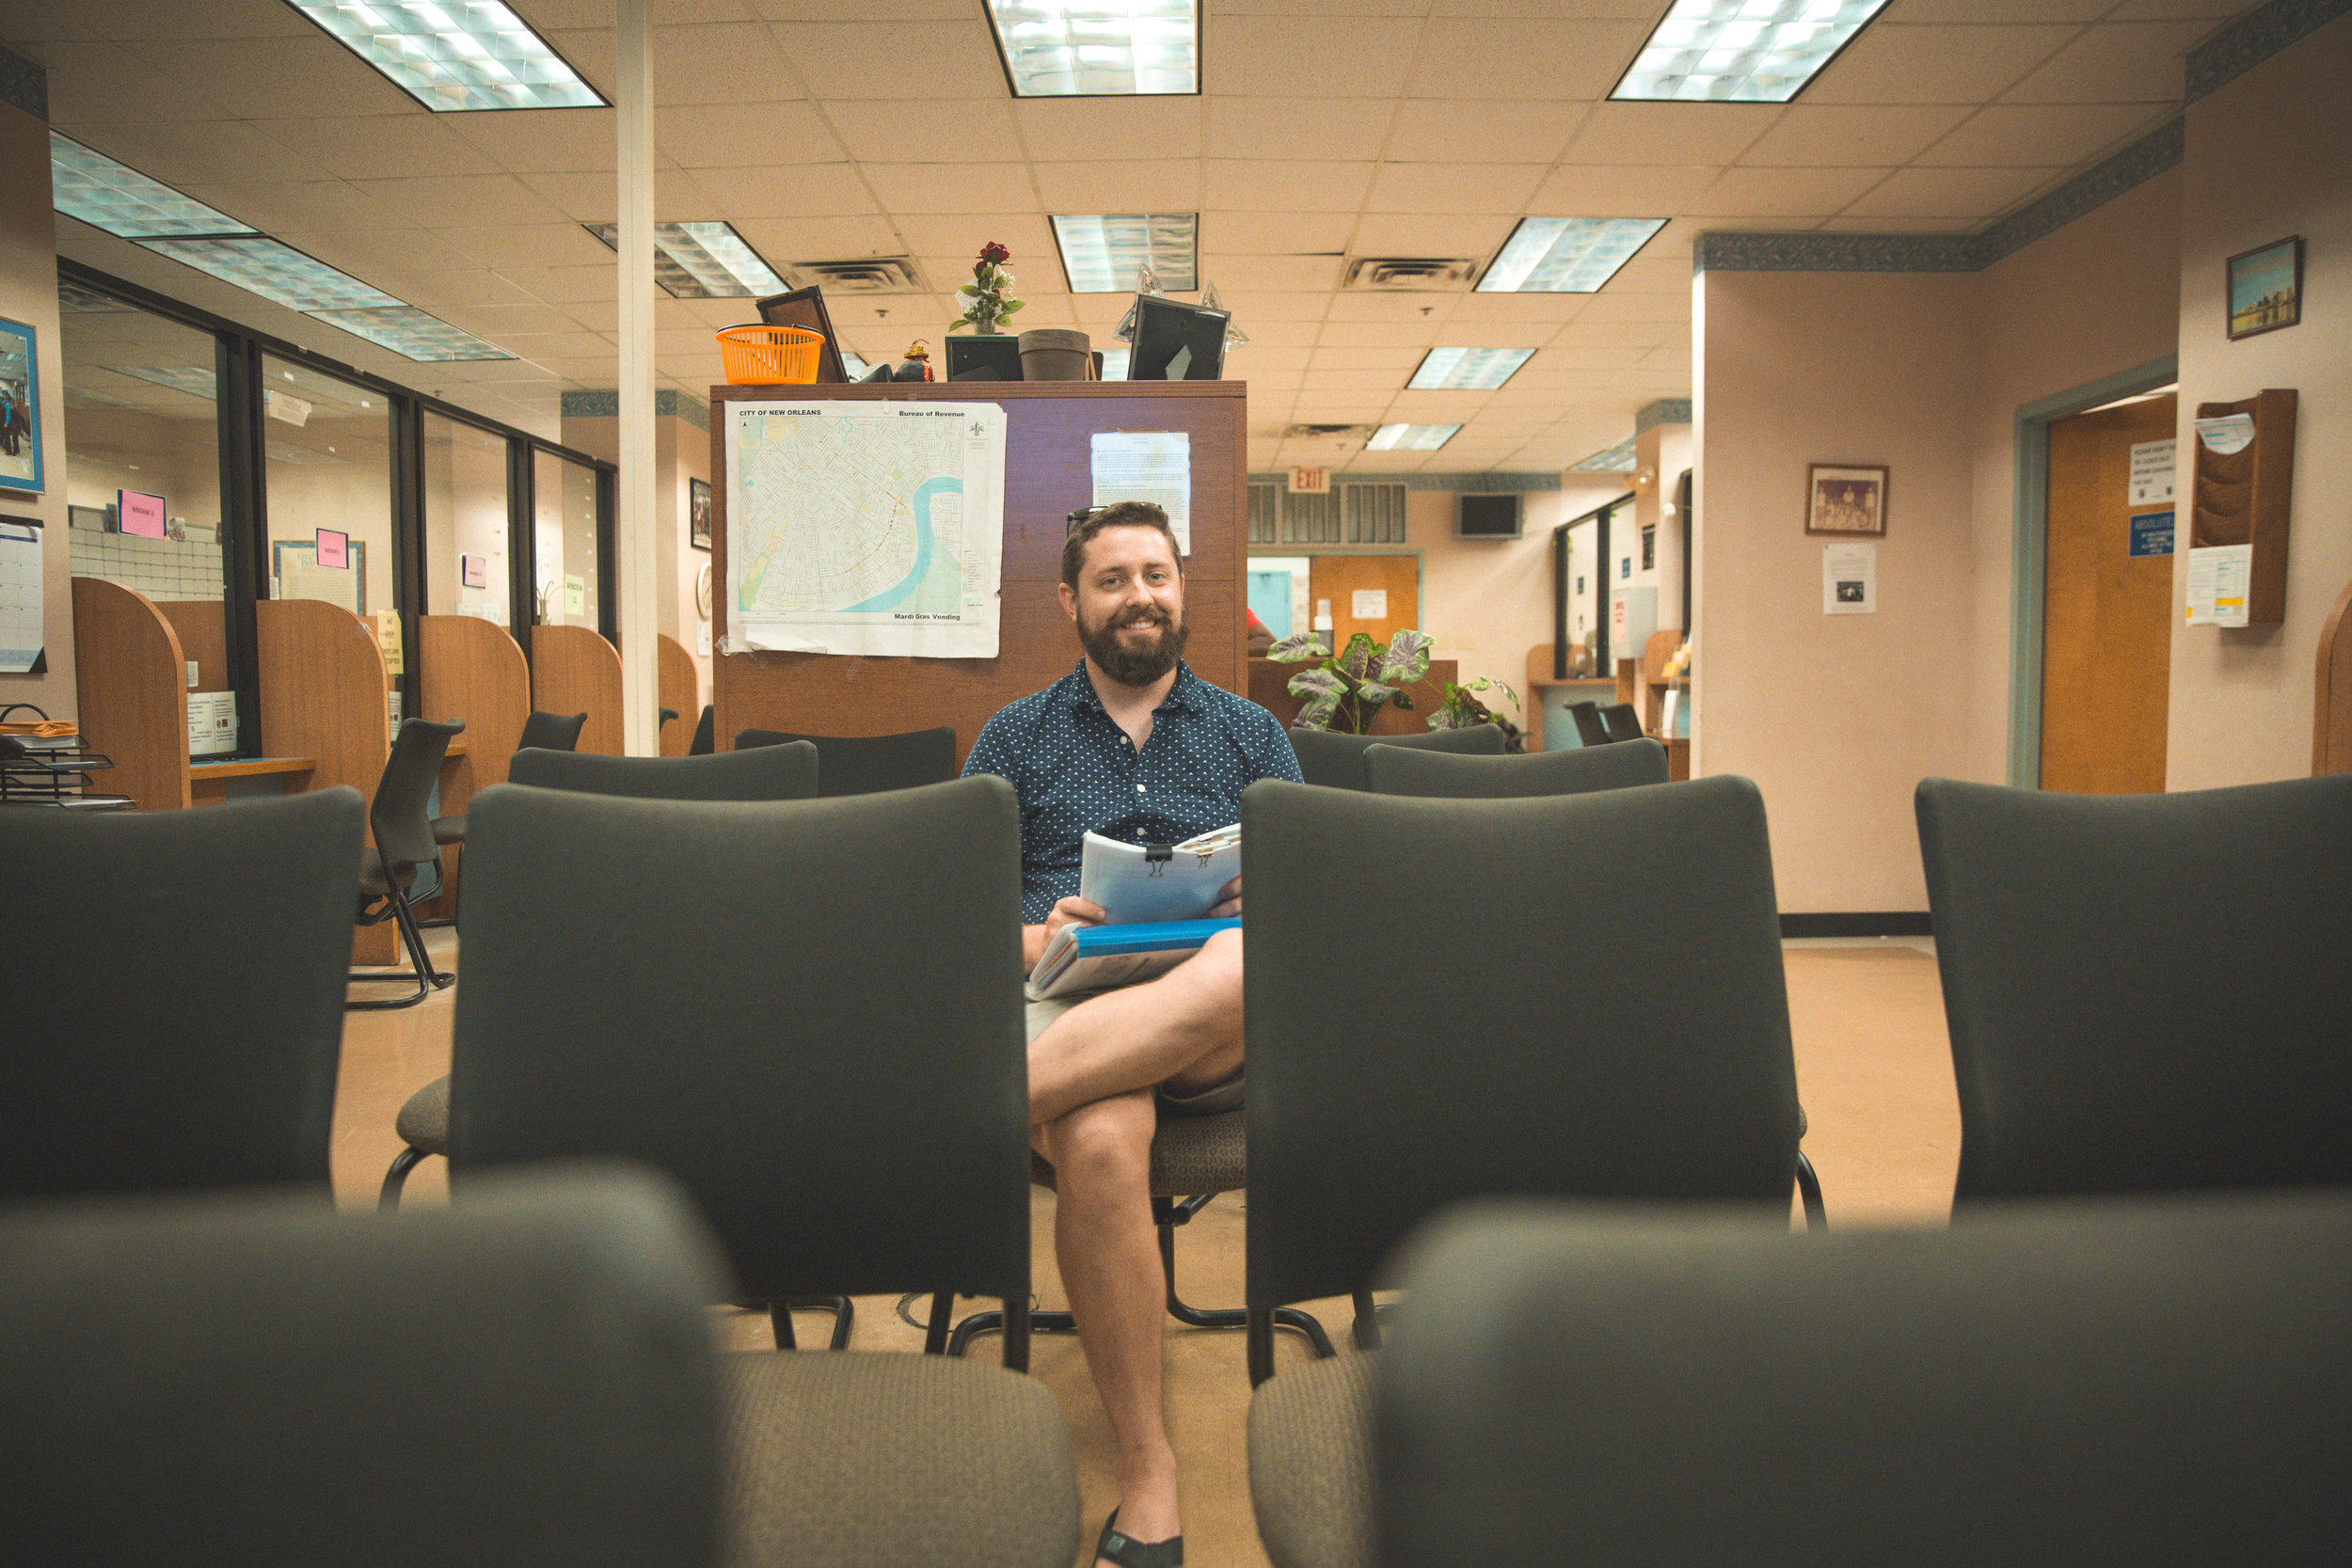 New Orleans_Miel Brewery_July 2018_Alex at City Hall waiting room